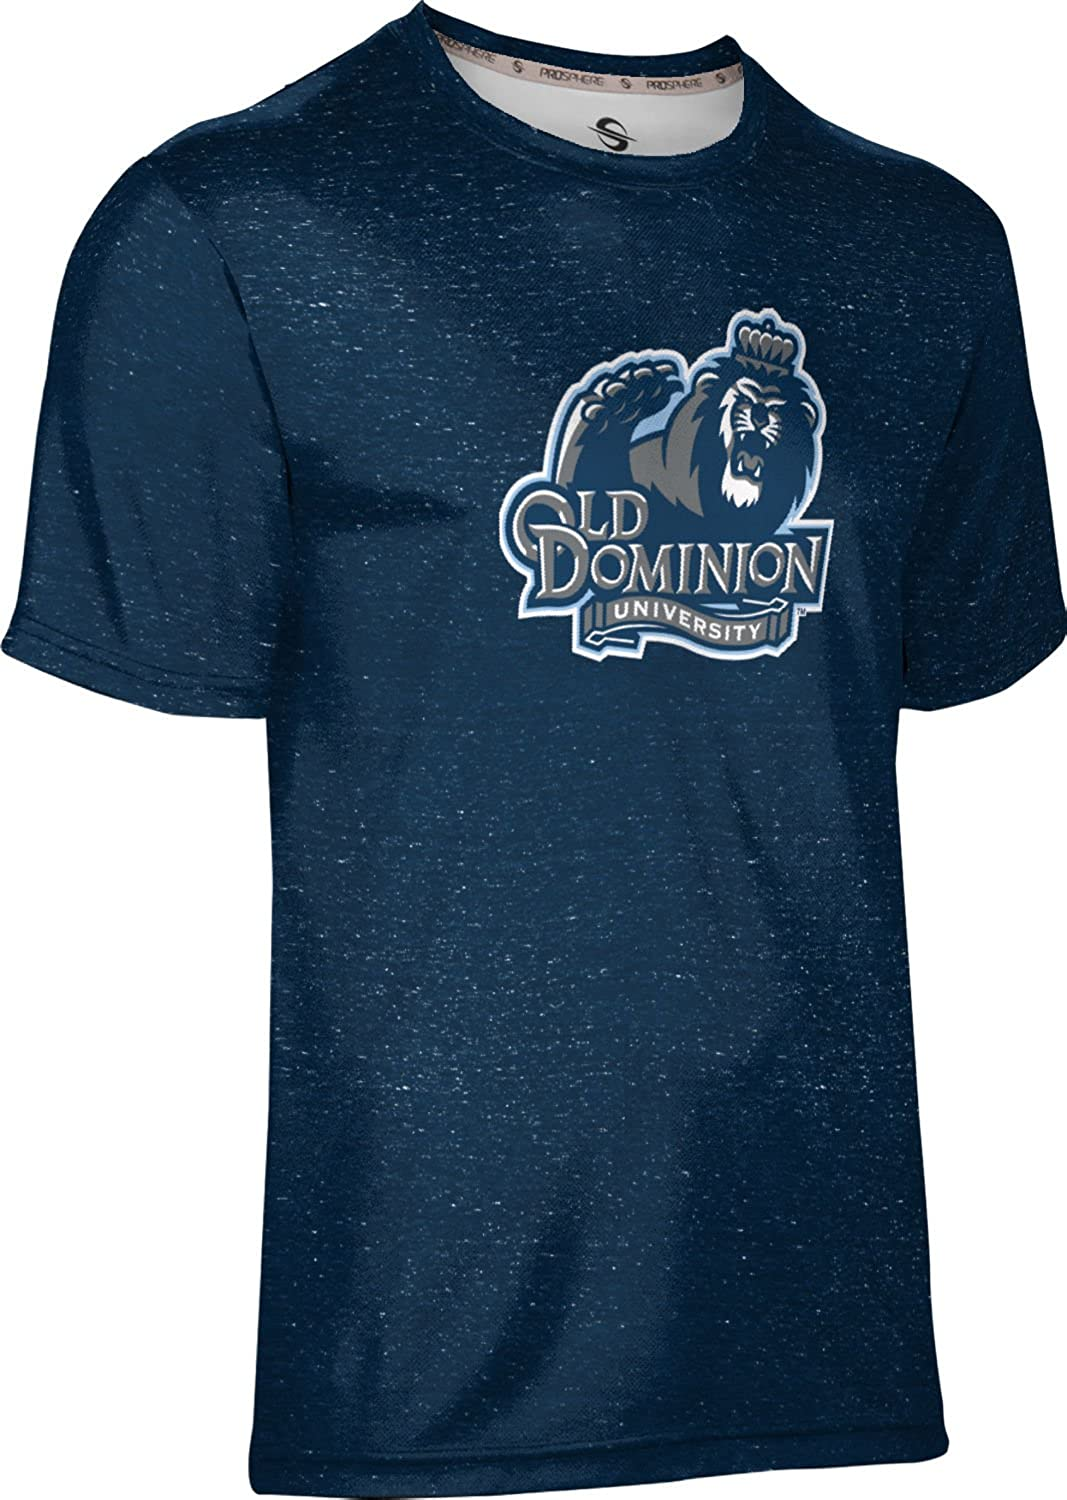 Heather ProSphere Old Dominion University Boys Performance T-Shirt